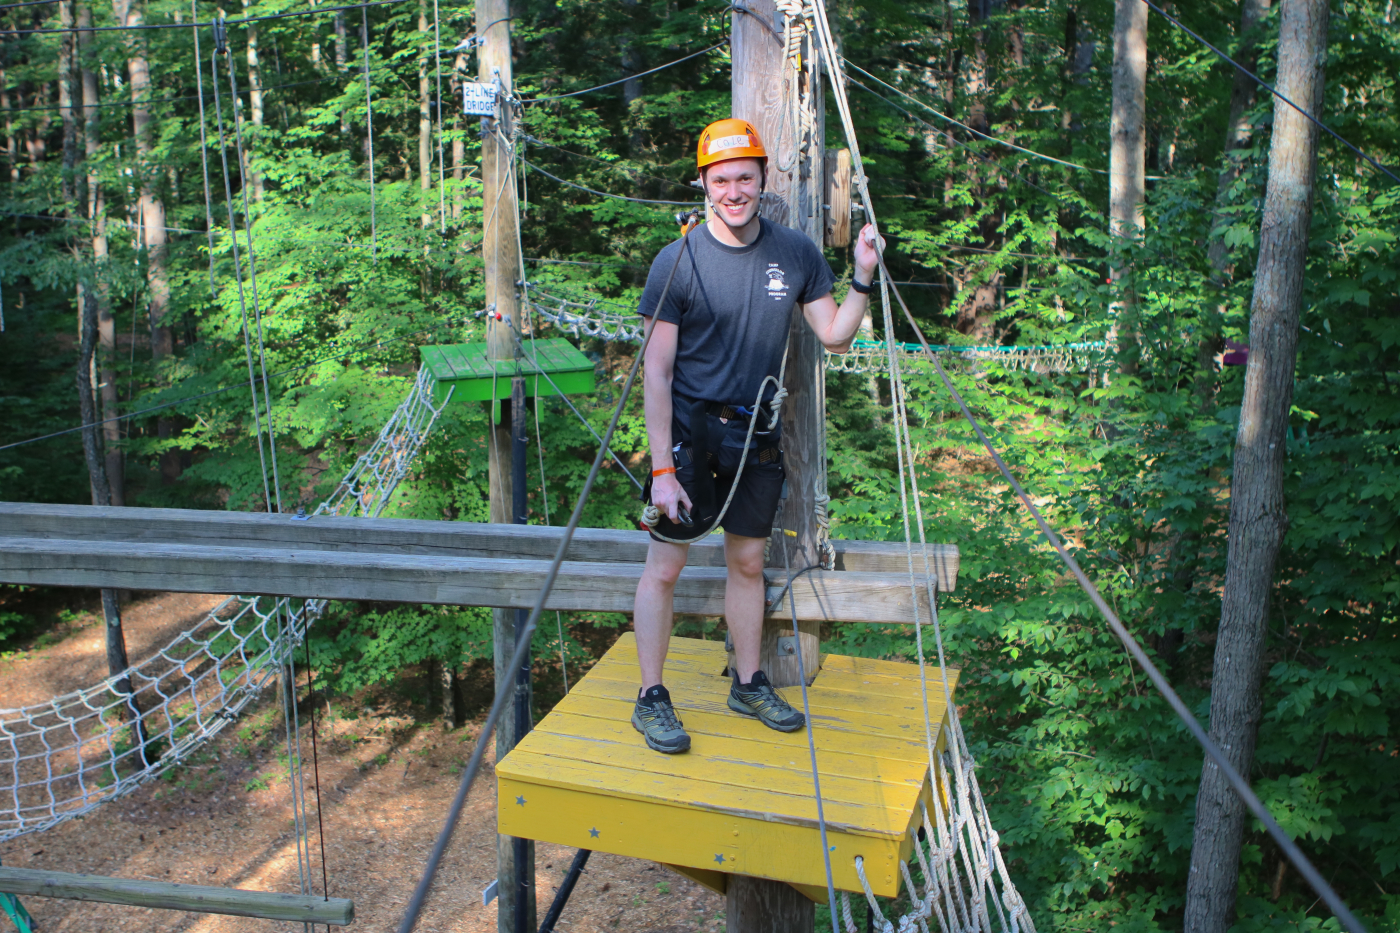 cole on ropes course platform